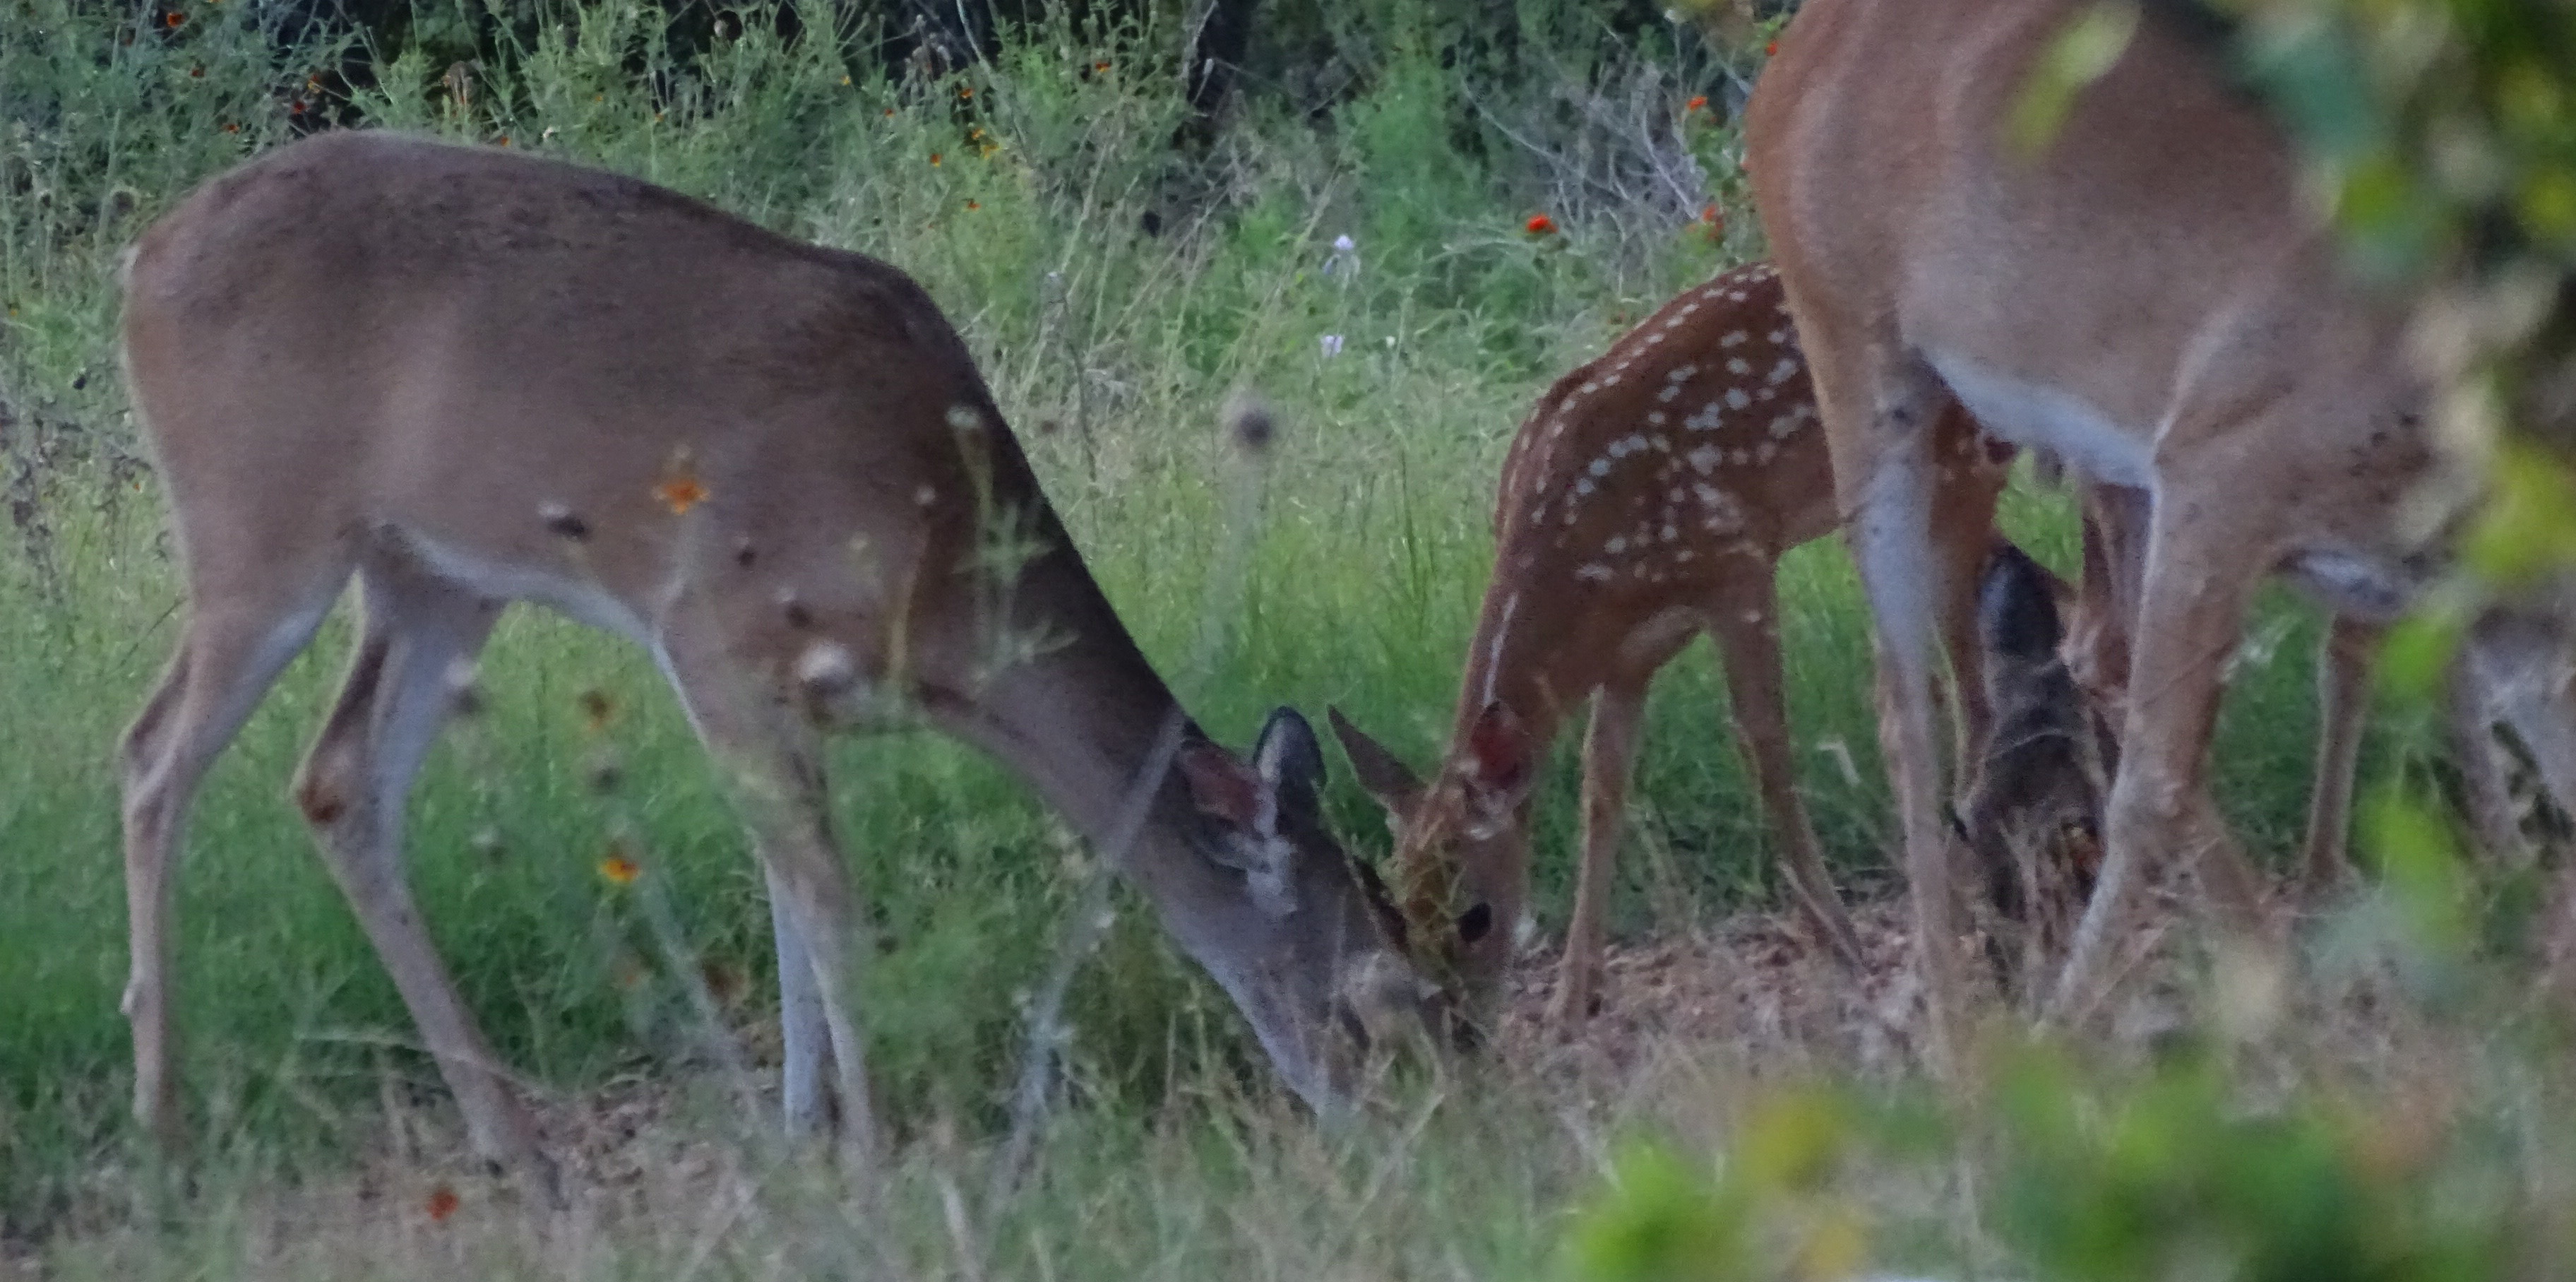 Whitetail deer pictures by Robert Hoague July 2017